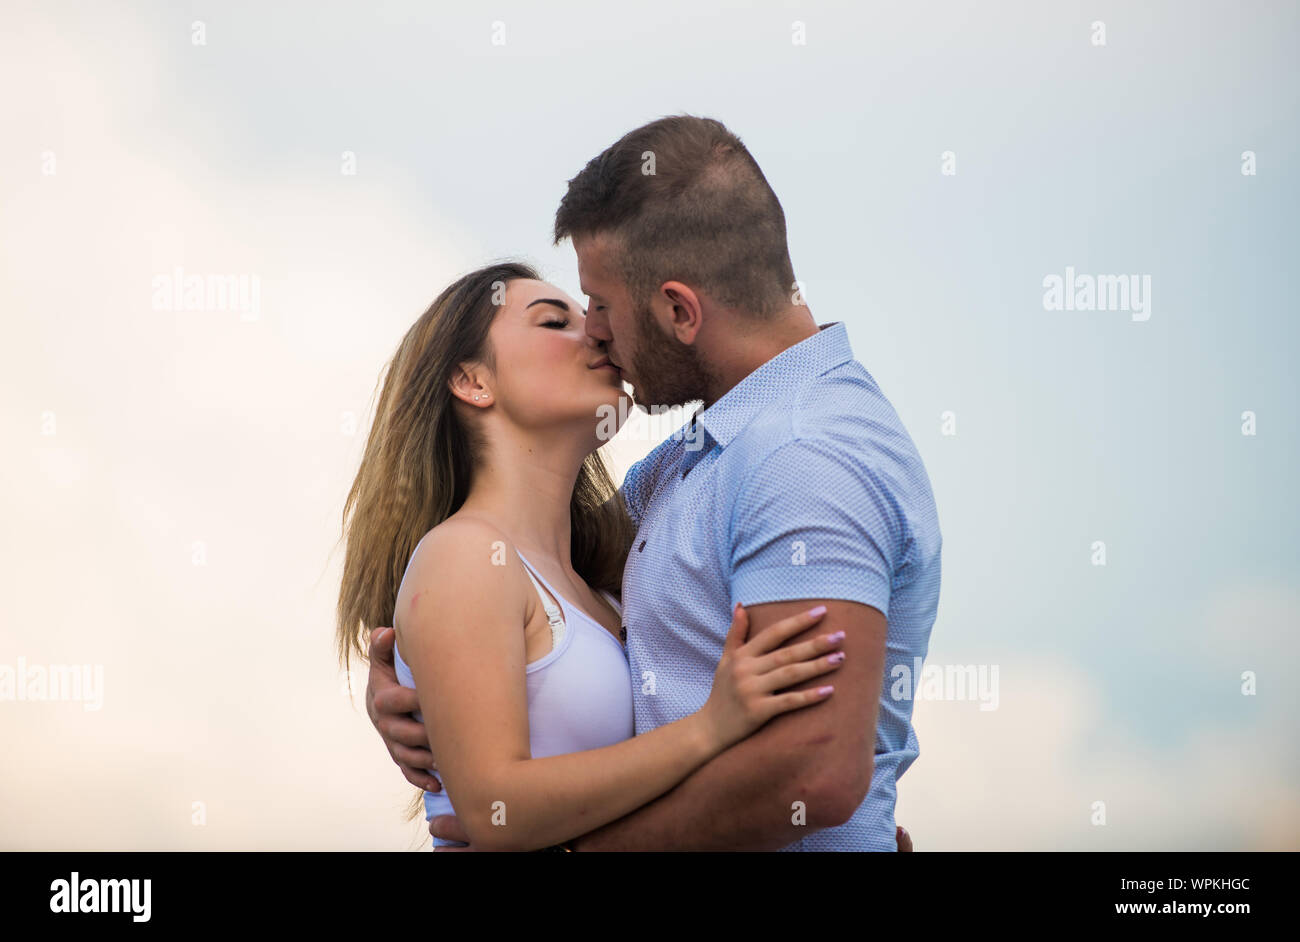 Just Married Honeymoon Concept Romantic Relations True Love Family Love Couple In Love Cute Relationship Man And Woman Cuddle Nature Background Supporting Her Together Forever Love Story Stock Photo Alamy